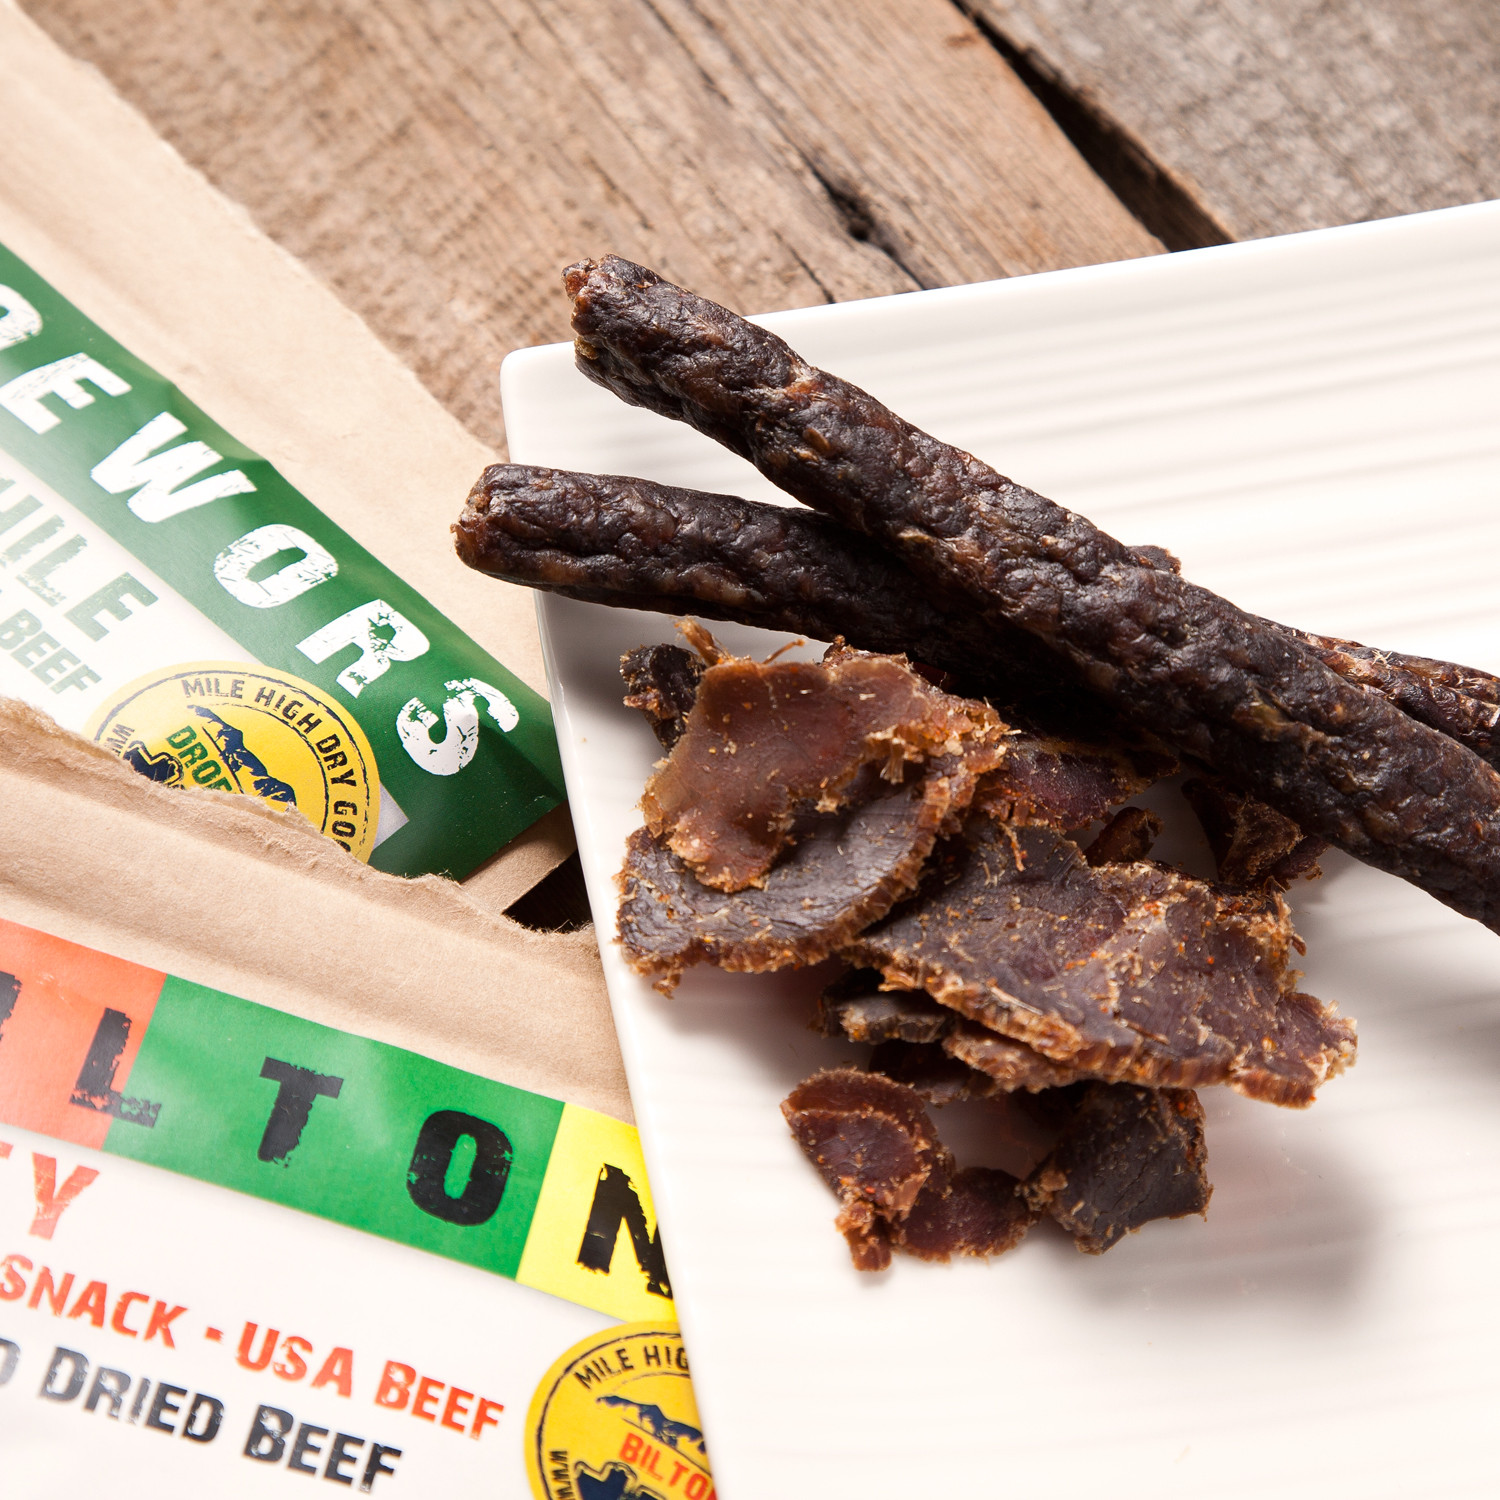 Spicy Bundle // 2 Spicy Biltong + 2 Green Chili Droewors